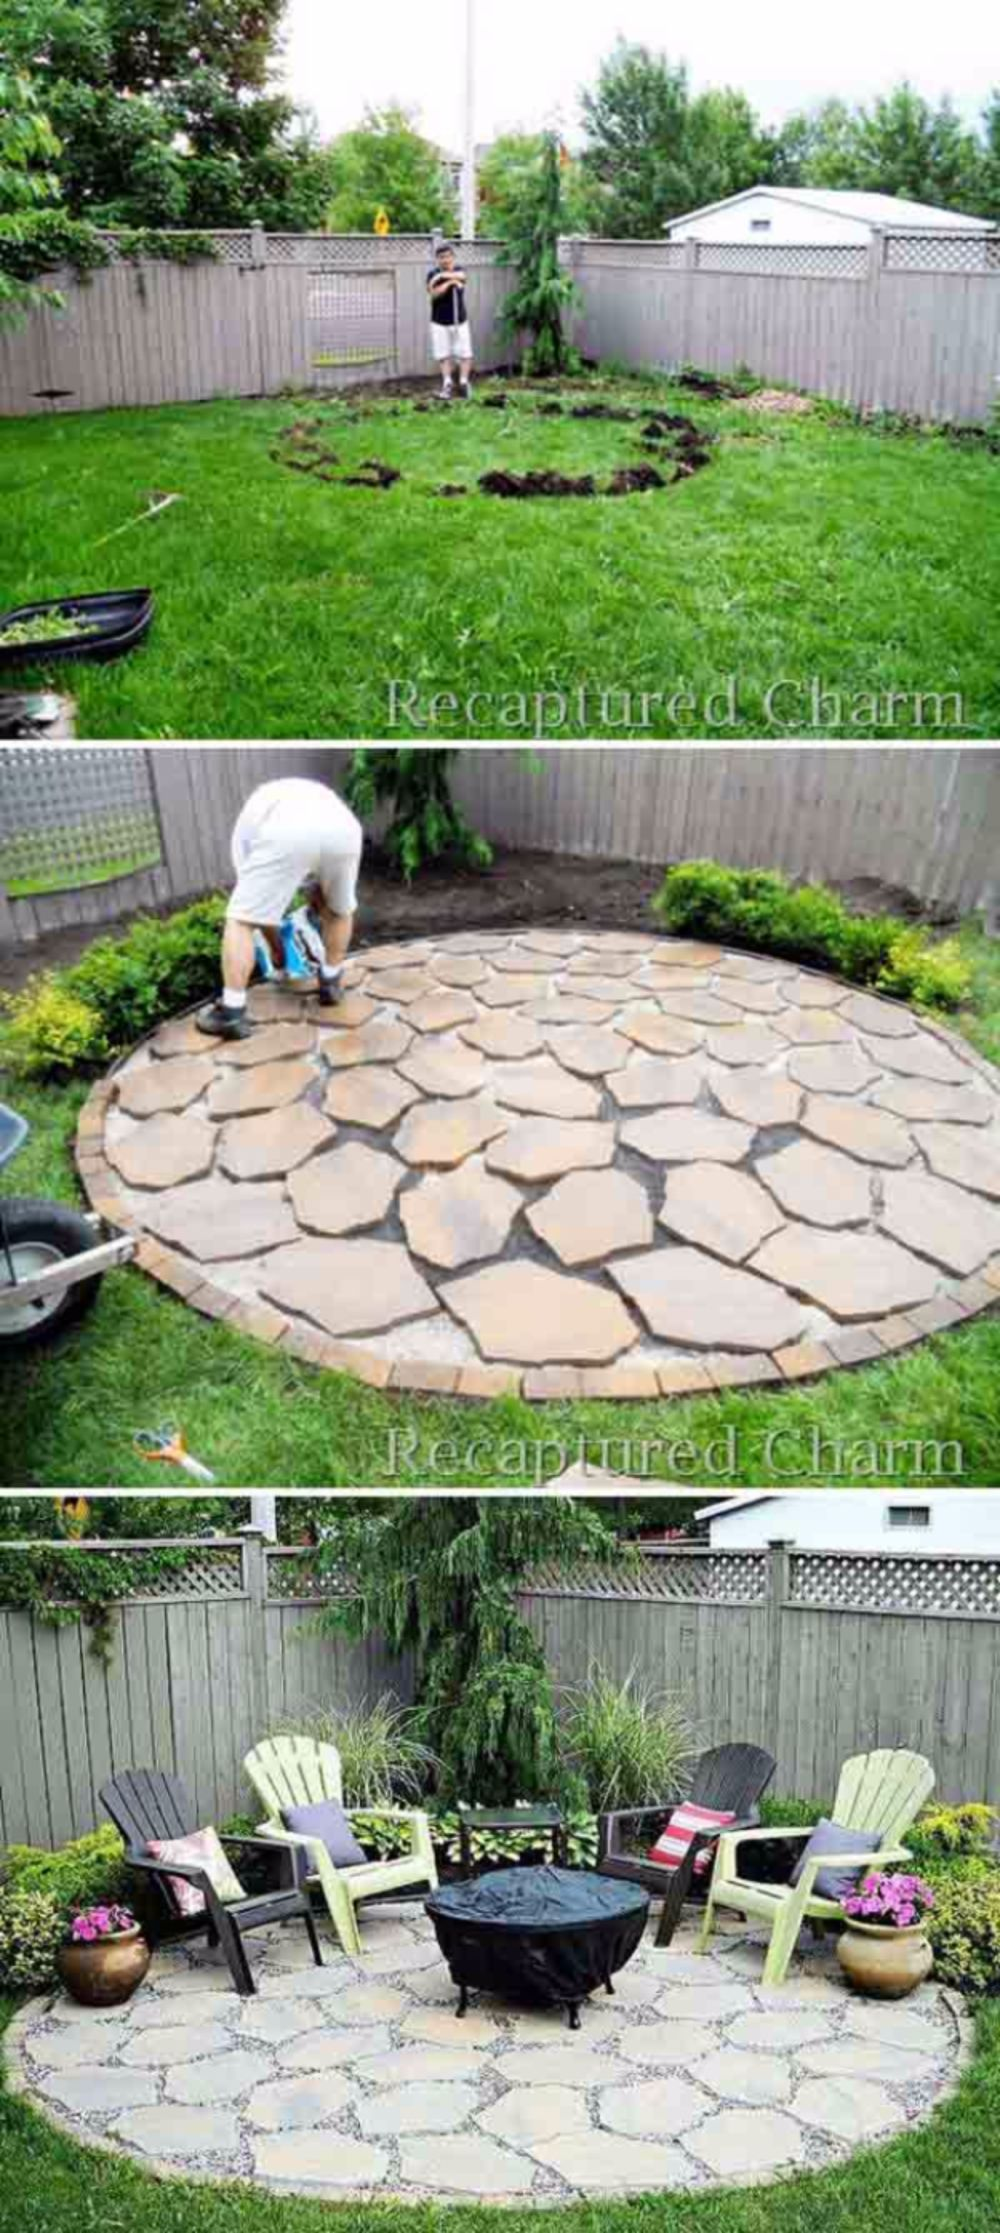 30 diy patio ideas on a budget diy patio patios and budgeting awesome 30 diy patio ideas on a budget httpswartaku solutioingenieria Image collections